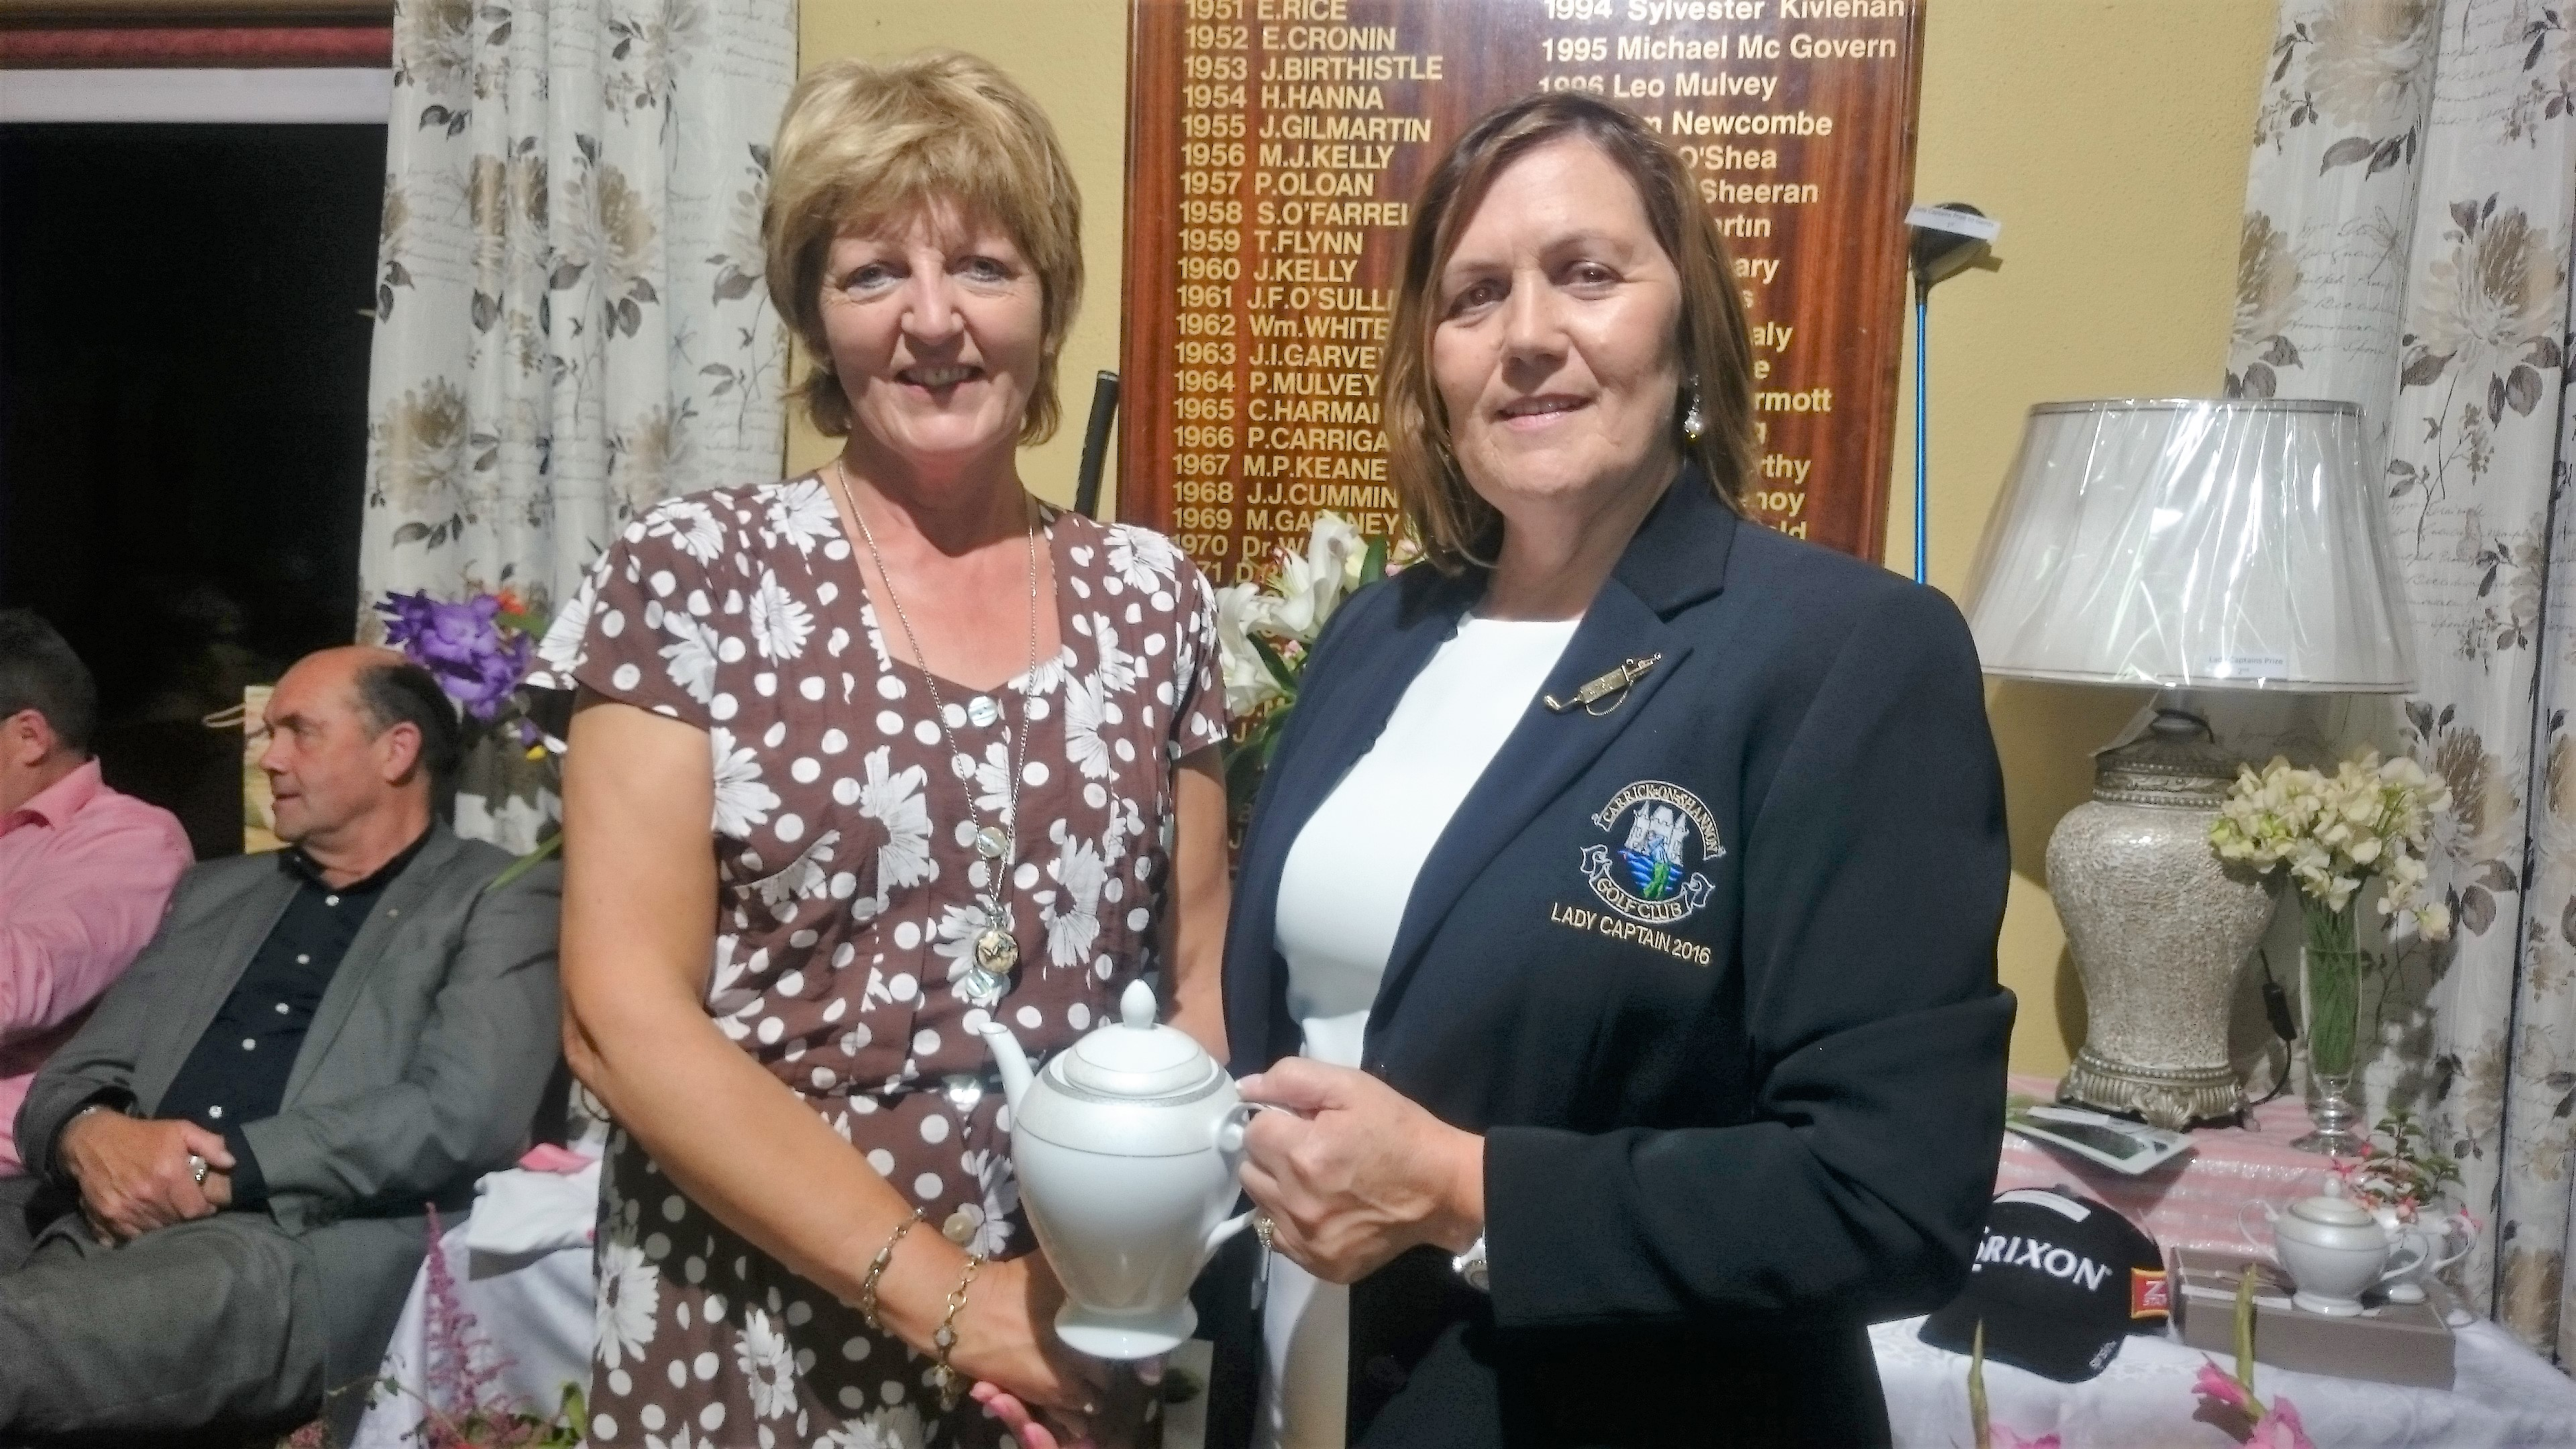 LADY CAPTAINS DAY: Anna Smith(Third), Lady Captain Noeleen Moffatt